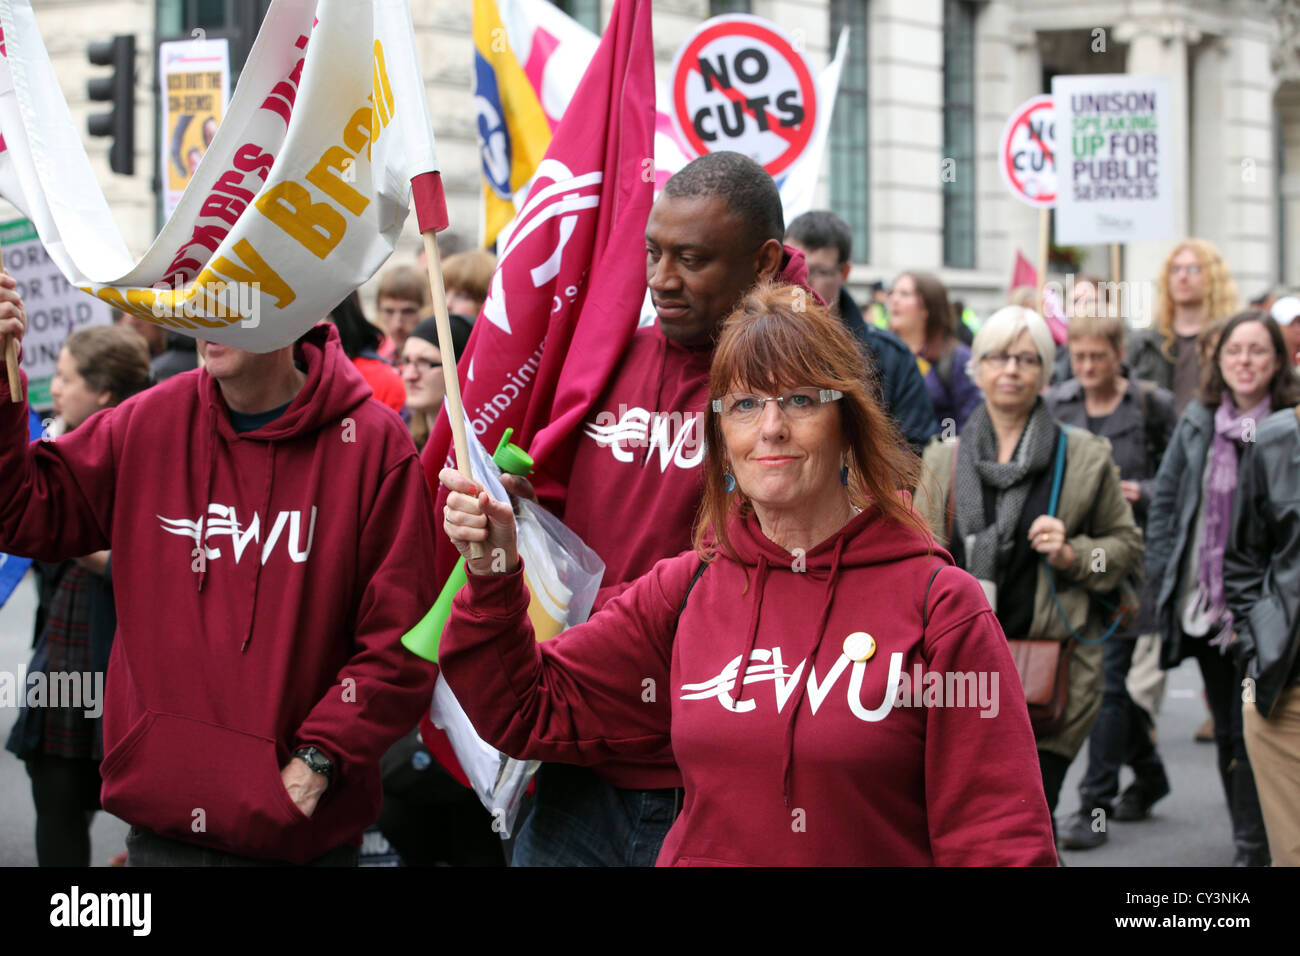 A Future That Works - TUC march & rally, central London. Anti-Cuts anti austerity mass protest movement - Stock Image